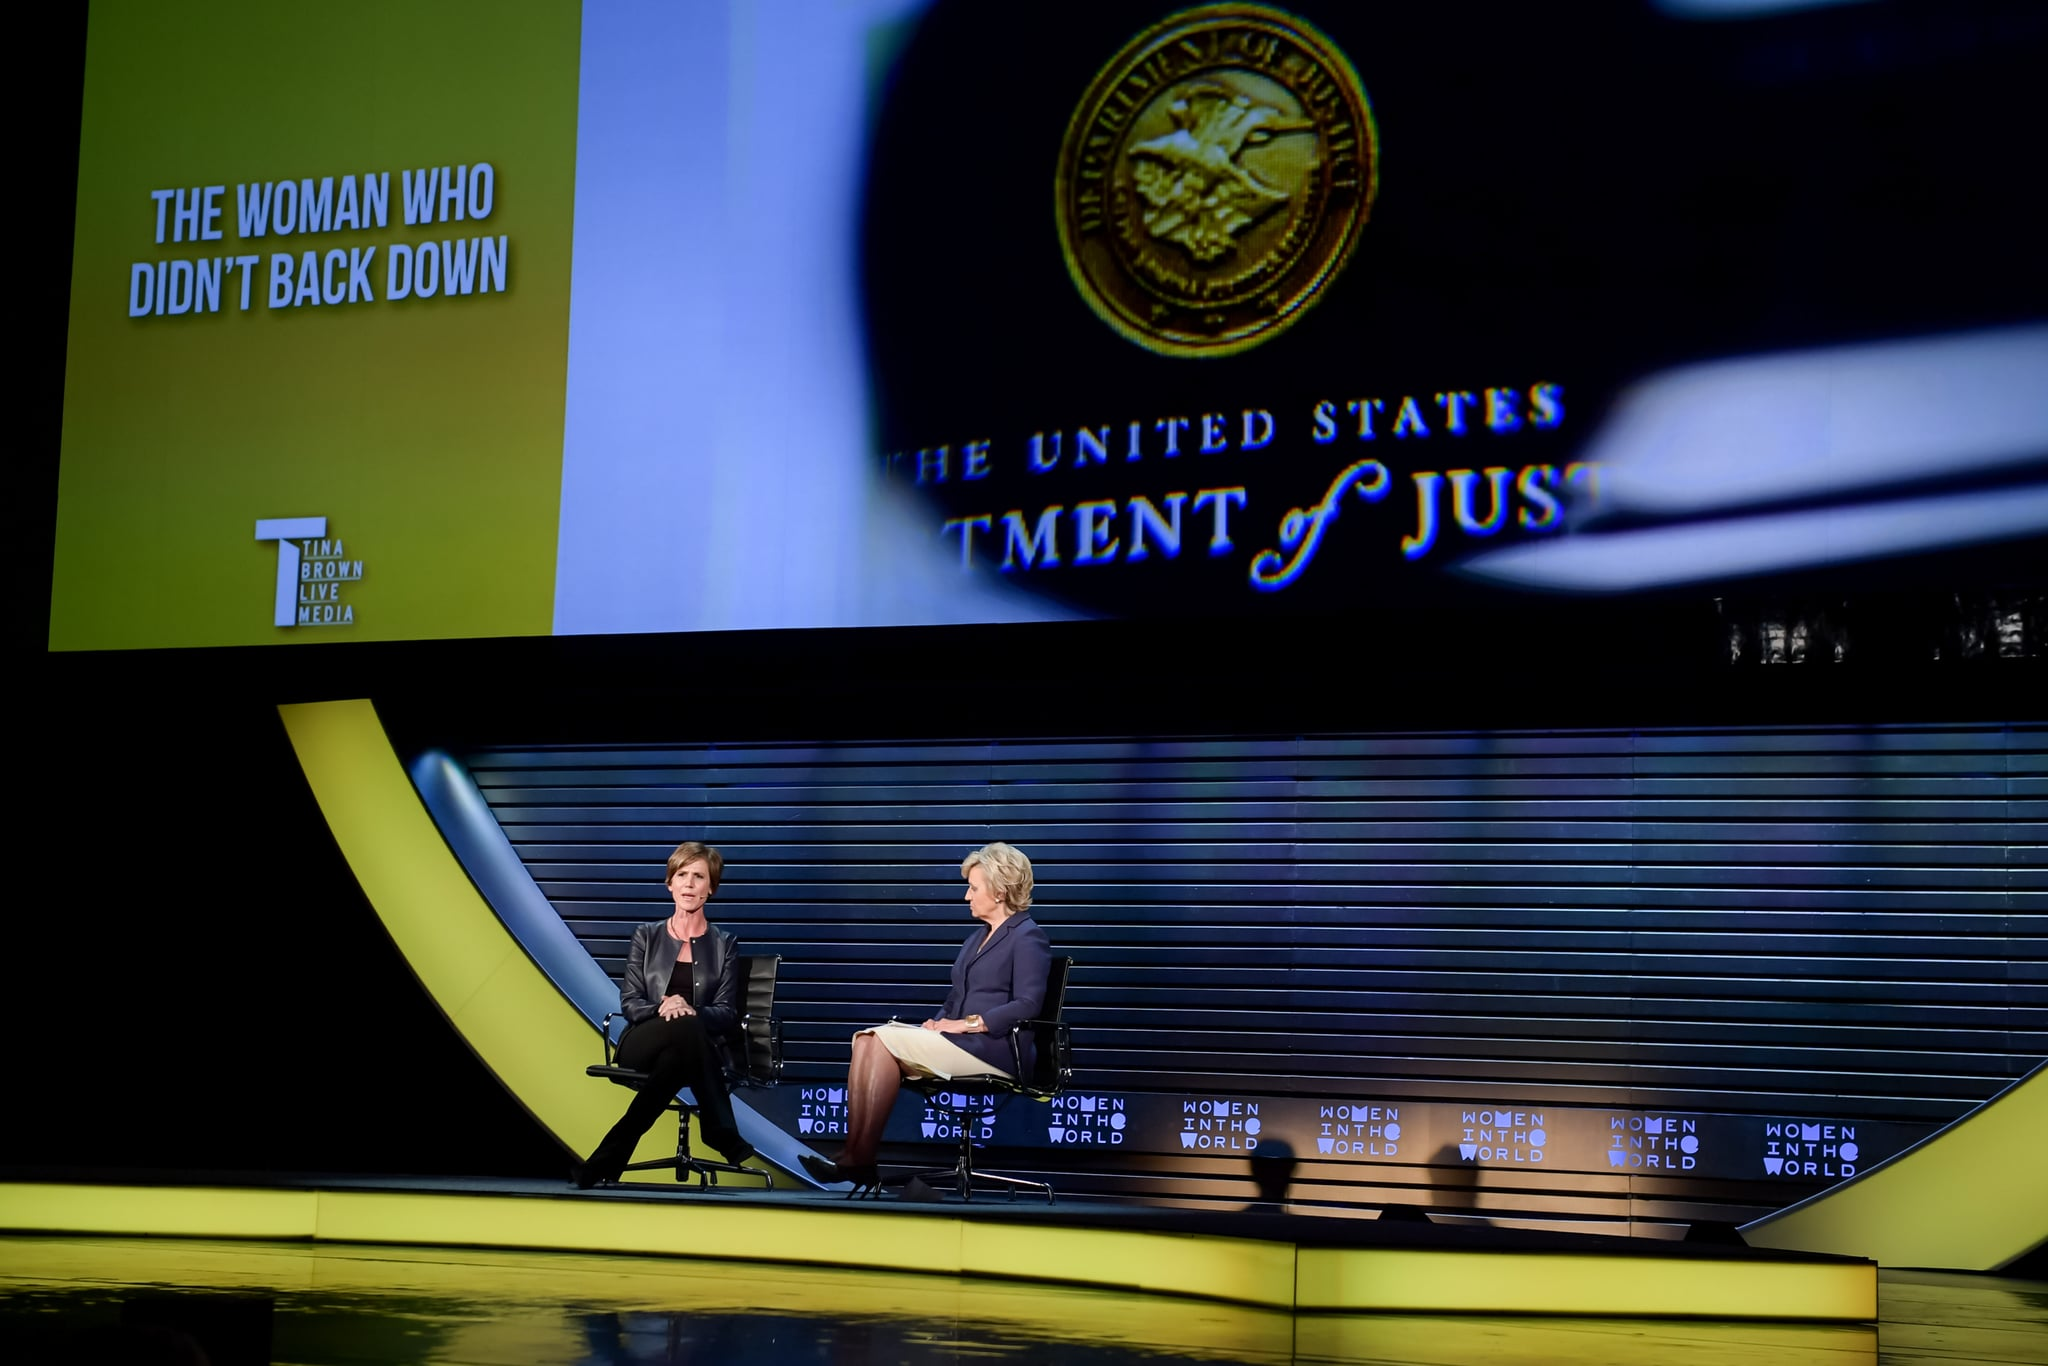 Sally Yates, Distinguished Visitor from Government, Georgetown University Law School; Former Deputy Attorney General and Tina Brown, Founder and CEO, Tina Brown Live Media/Women in the World on 'THE WOMAN WHO DIDN'T BACK DOWN' at The 2018 Women In The World Summit in New York City; 4/13/2018